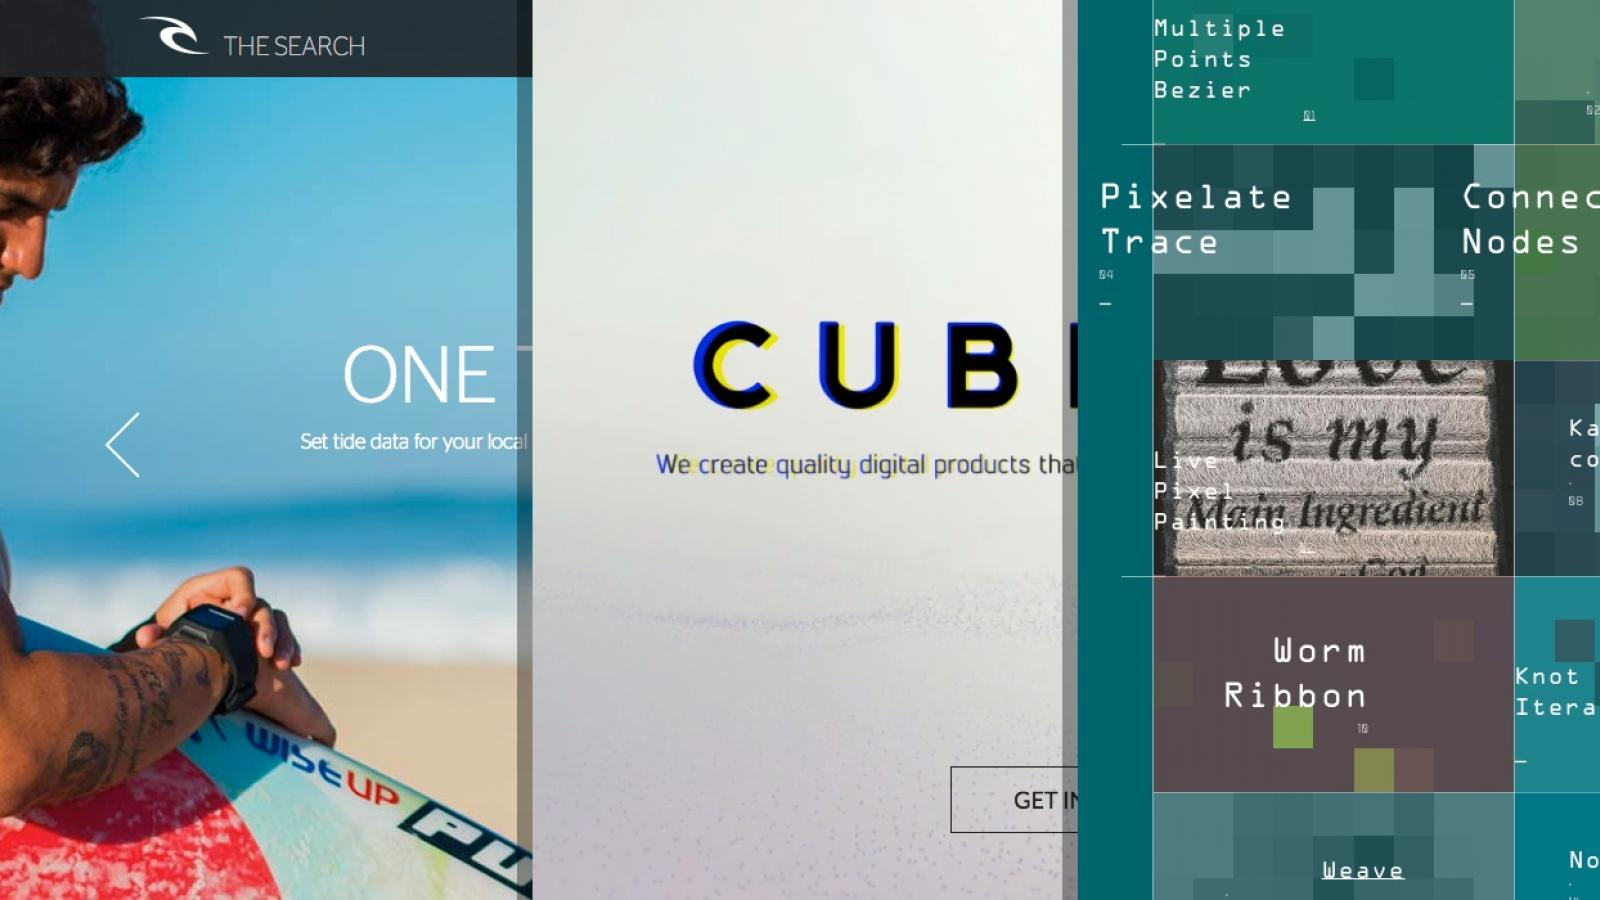 Sites of the Week: Glassy Pro, Cuberto, SearchGPS and more